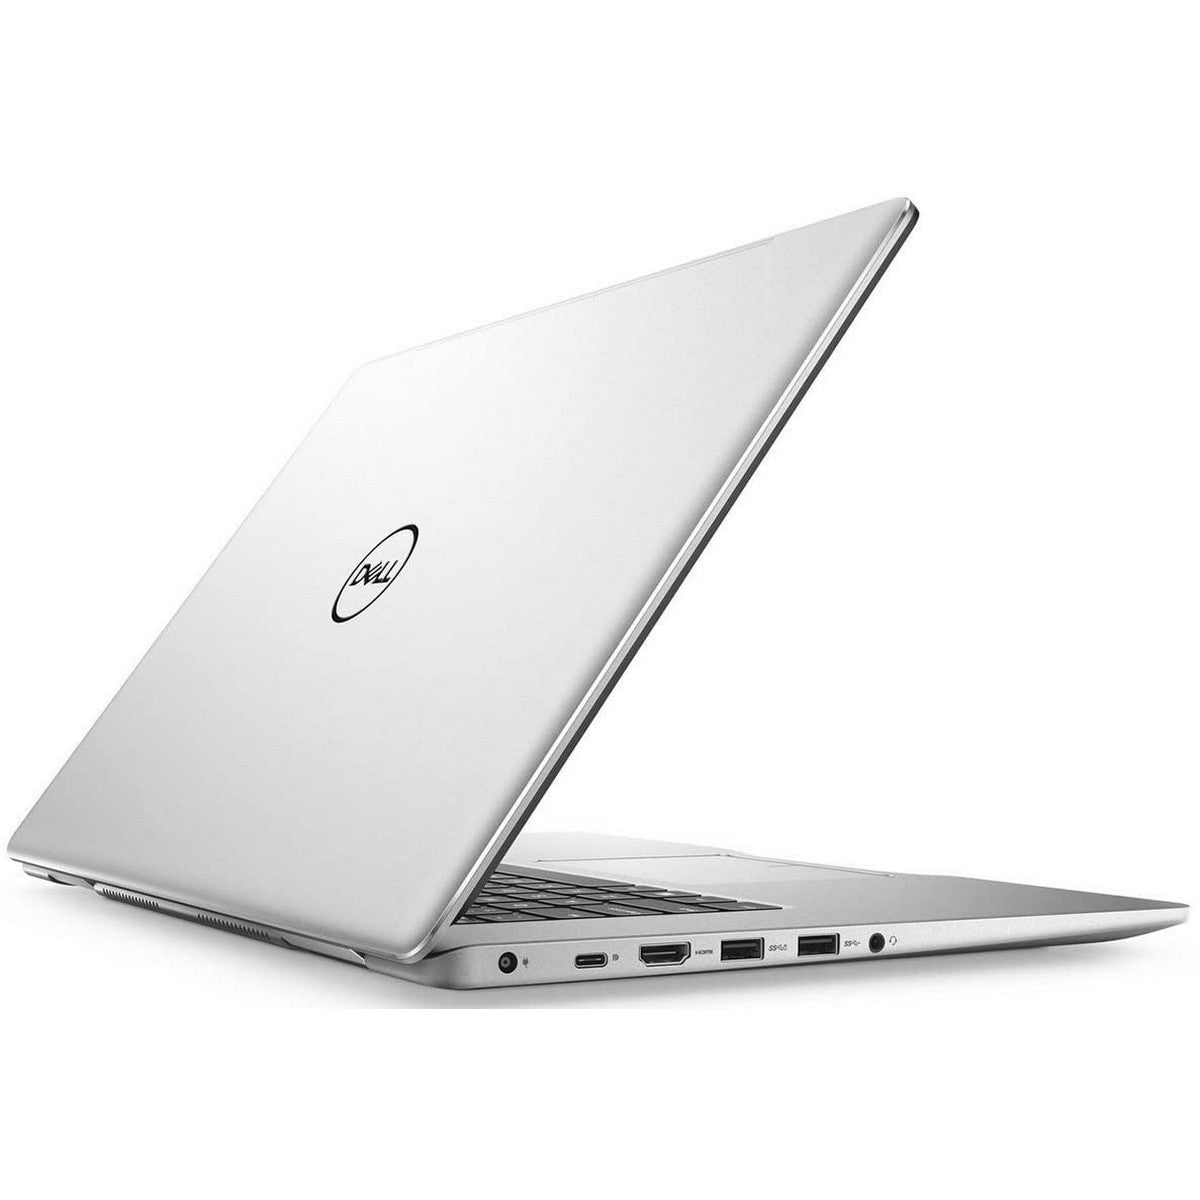 Dell Inspiron 15-7570 Laptop 15.6'' FHD , Intel Core i7 i7-8550U 1.80GHz 8M Cache, up to 4.0GHz, 16GB RAM, GeForce MX130 4GB GPU, 1TB HDD, Touchscreen, Windows 10, English Keyboard, Silver